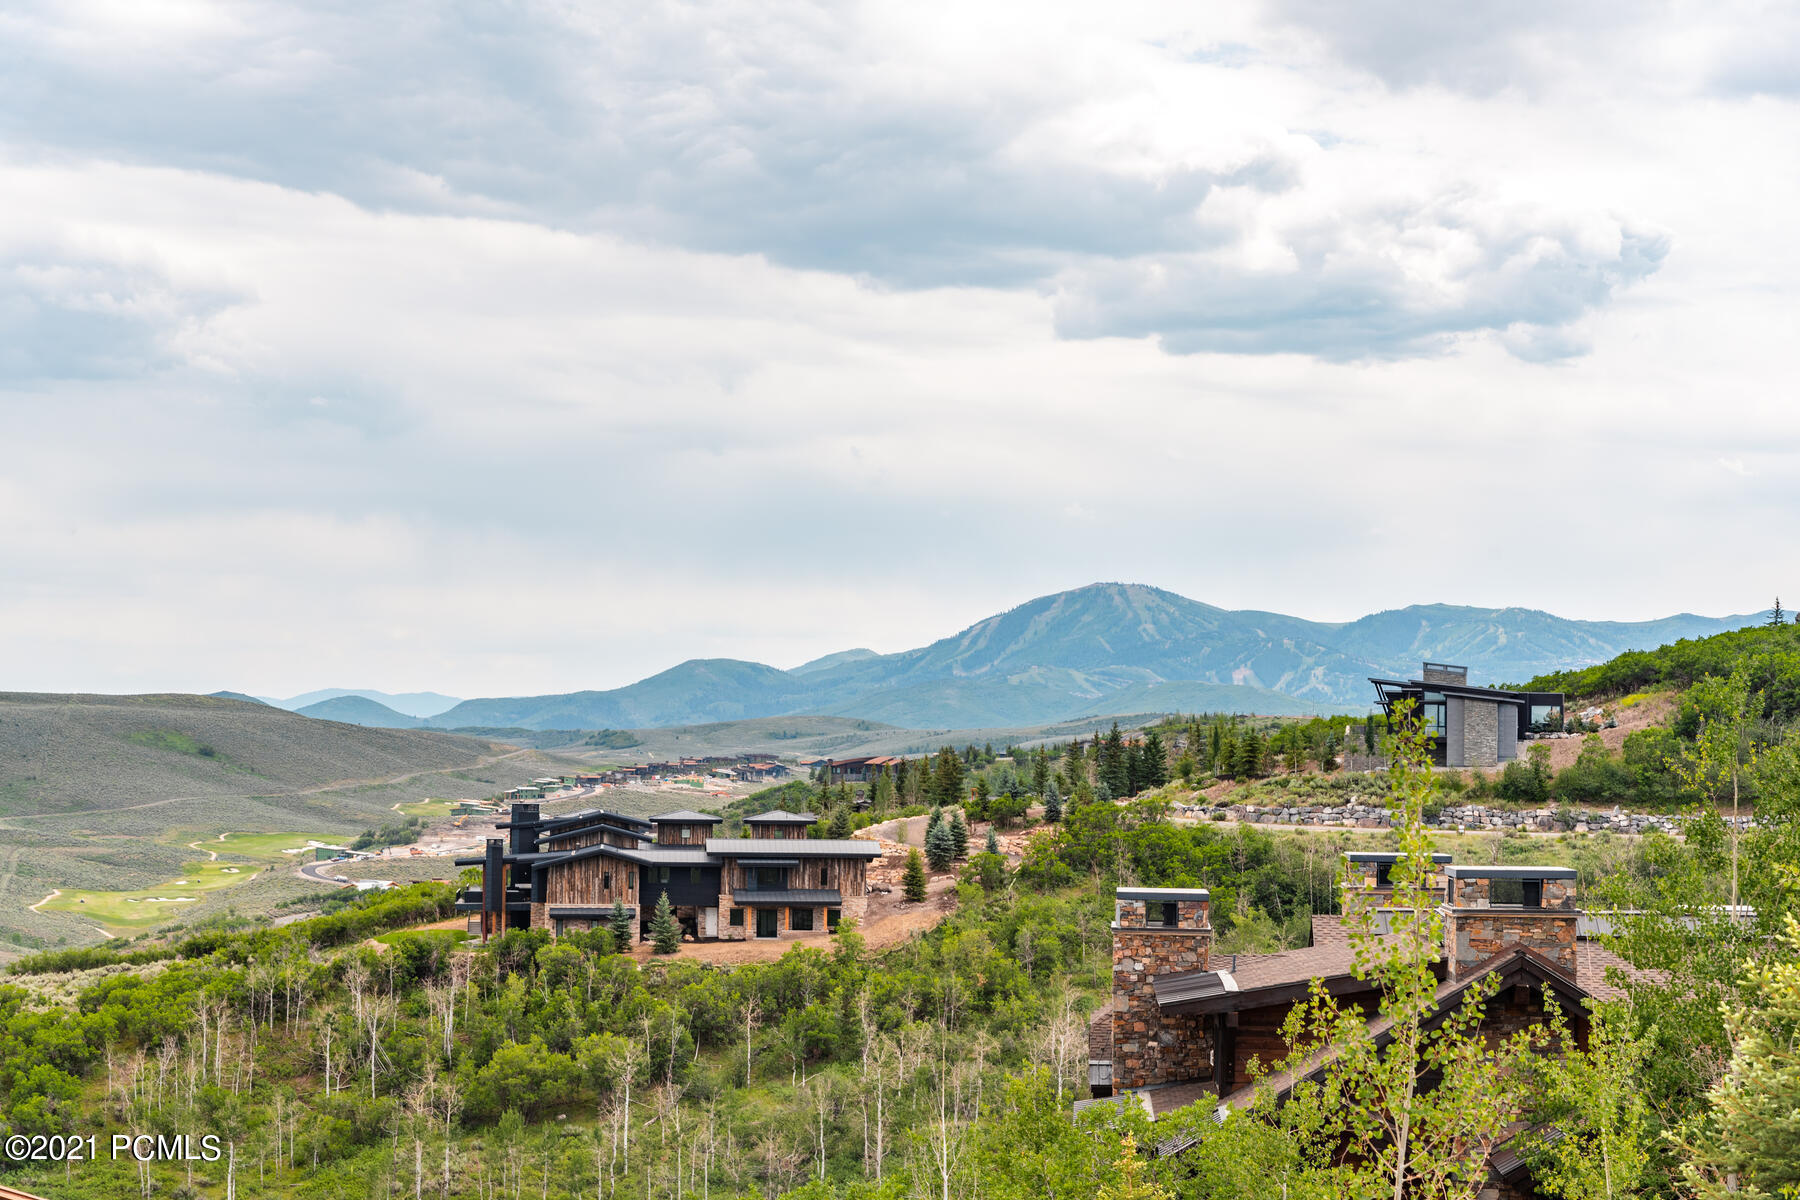 Tremendous panoramic views from this Deer Crossing homesite with views of Deer Valley, the Uinta mountains, and the Kamas Valley. Full golf membership available for purchase from Promontory Club with no waiting list. This beautiful setting lets you enjoy morning sunshine and afternoon and evening shade with an abundance of wildlife year-round. Gradual slope for a downhill build and full walkout lower level that will accommodate up to 8,000 livable square feet. One of Promontory's best opportunities.